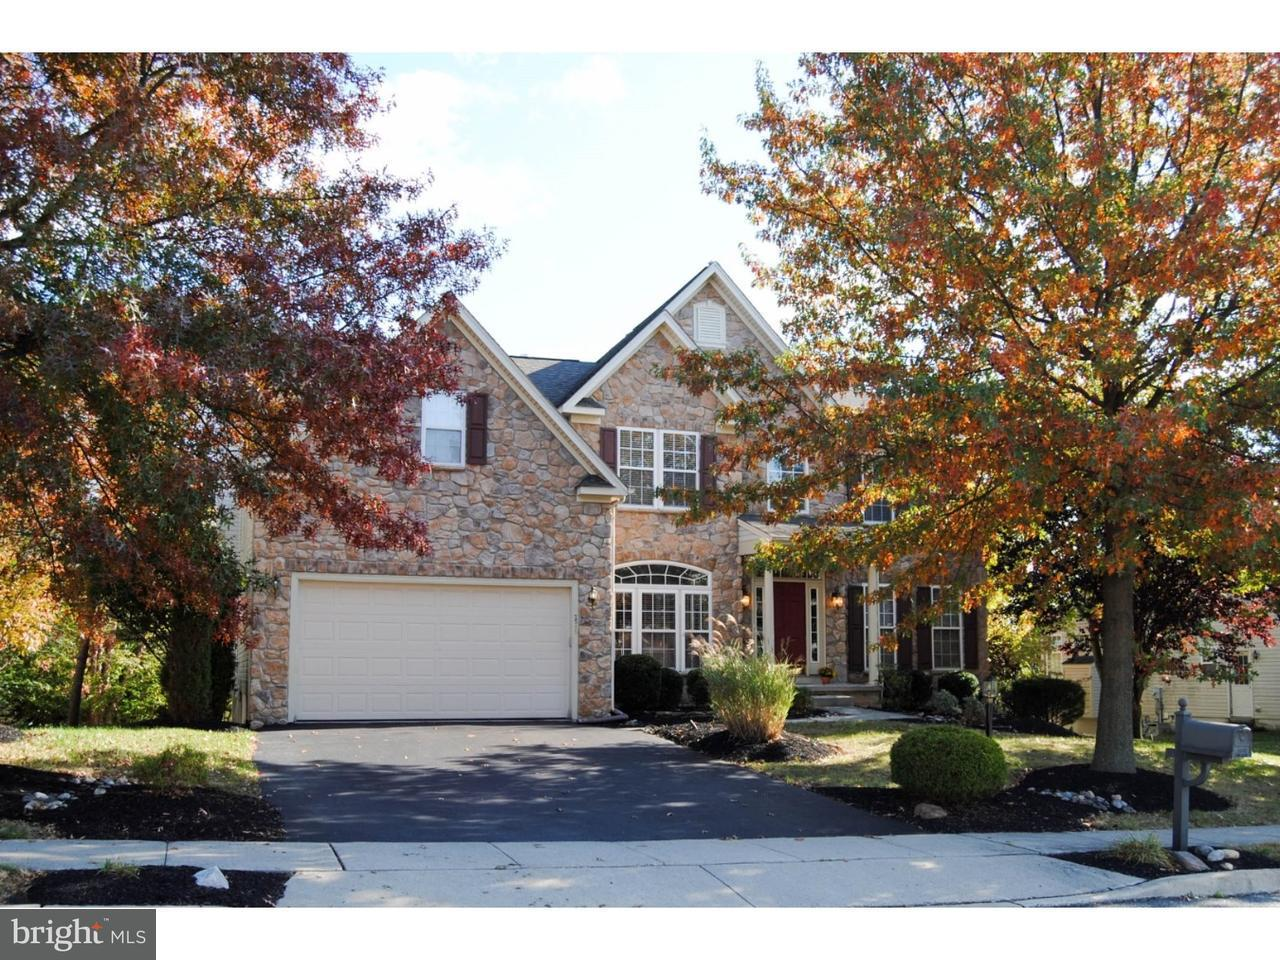 Single Family Home for Sale at 2515 CRESTLINE Drive Lansdale, Pennsylvania 19446 United States